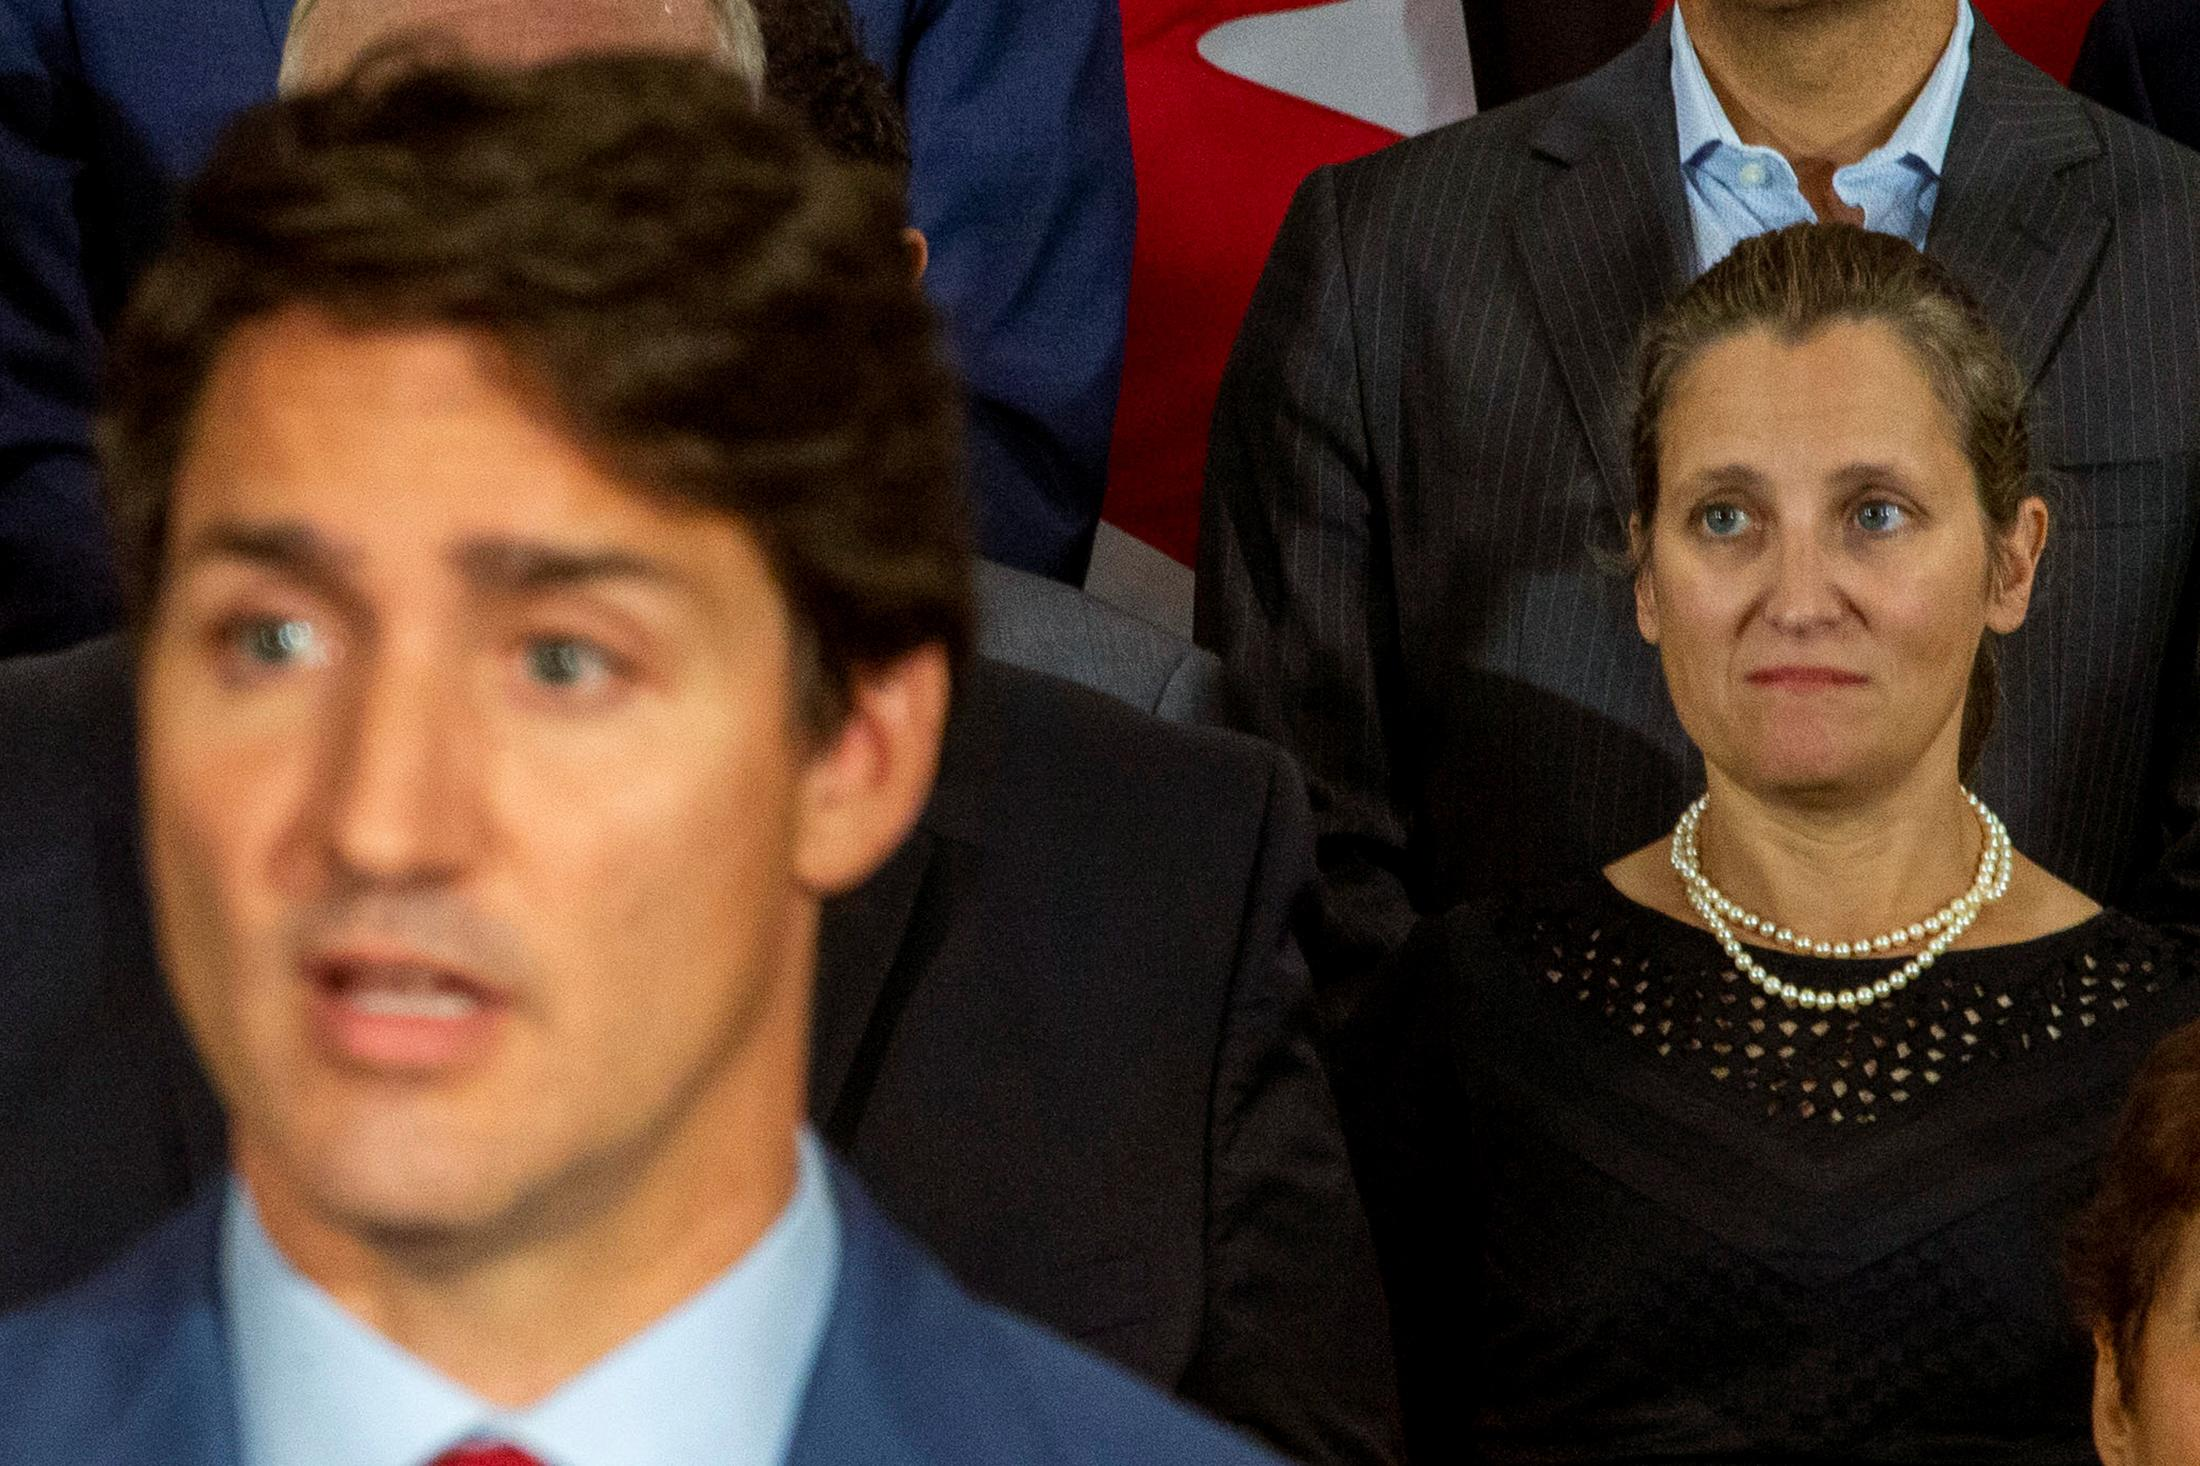 Why Trudeau's push for equality is a mixed bag